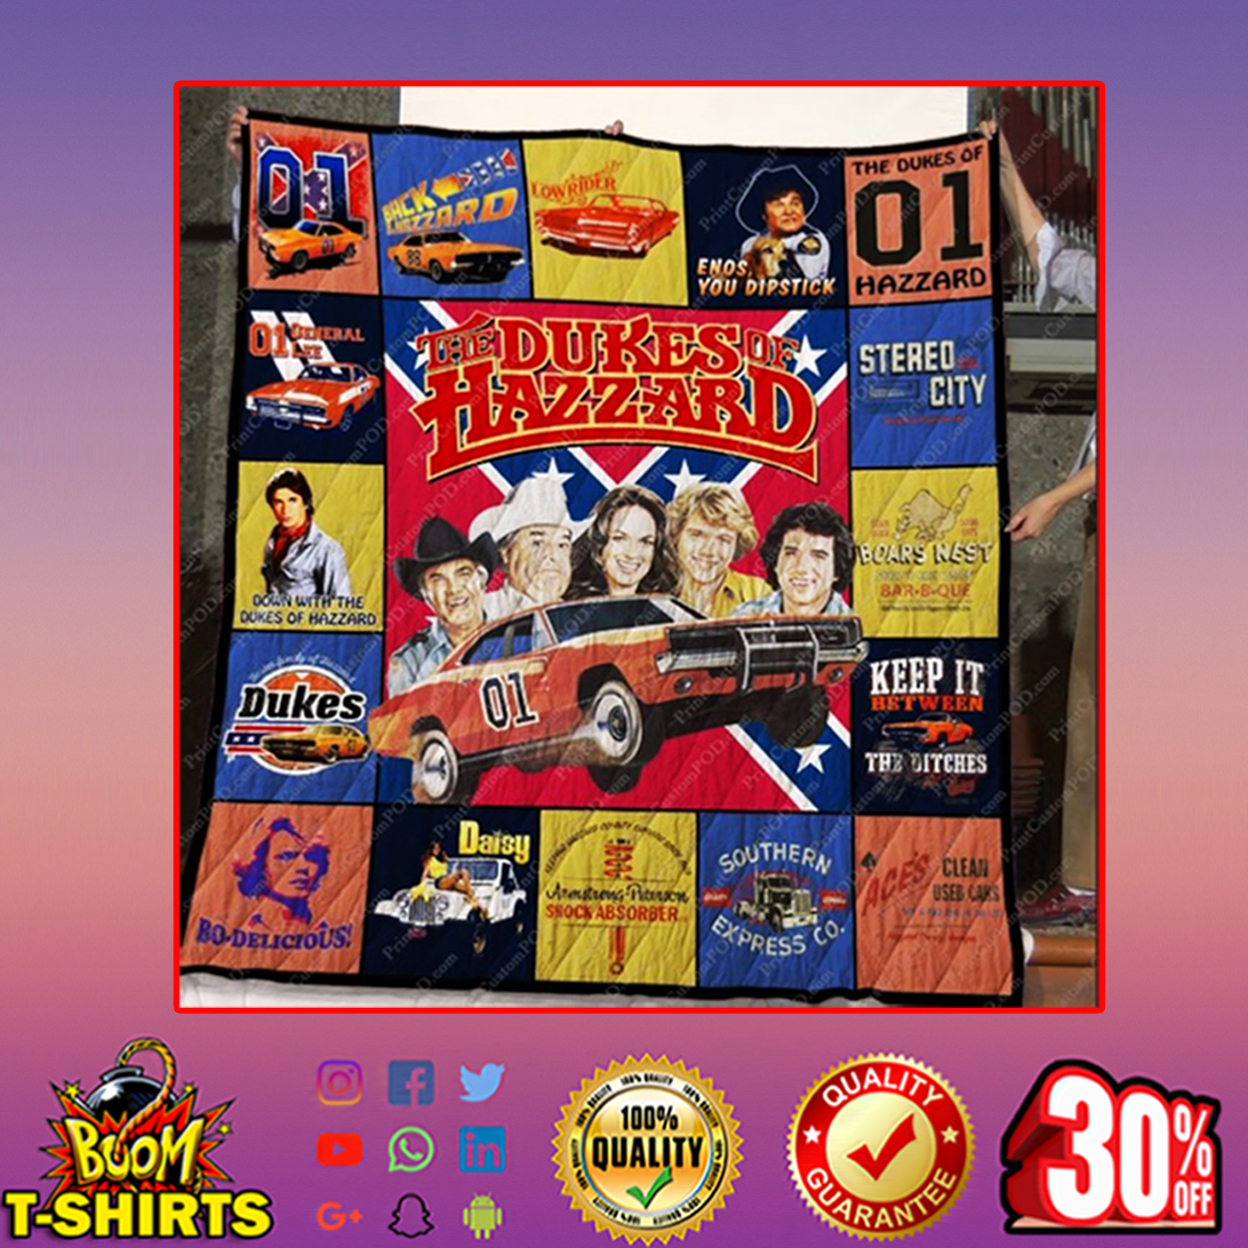 The dukes of hazzard quilt blanket - twin (60x70 inches)